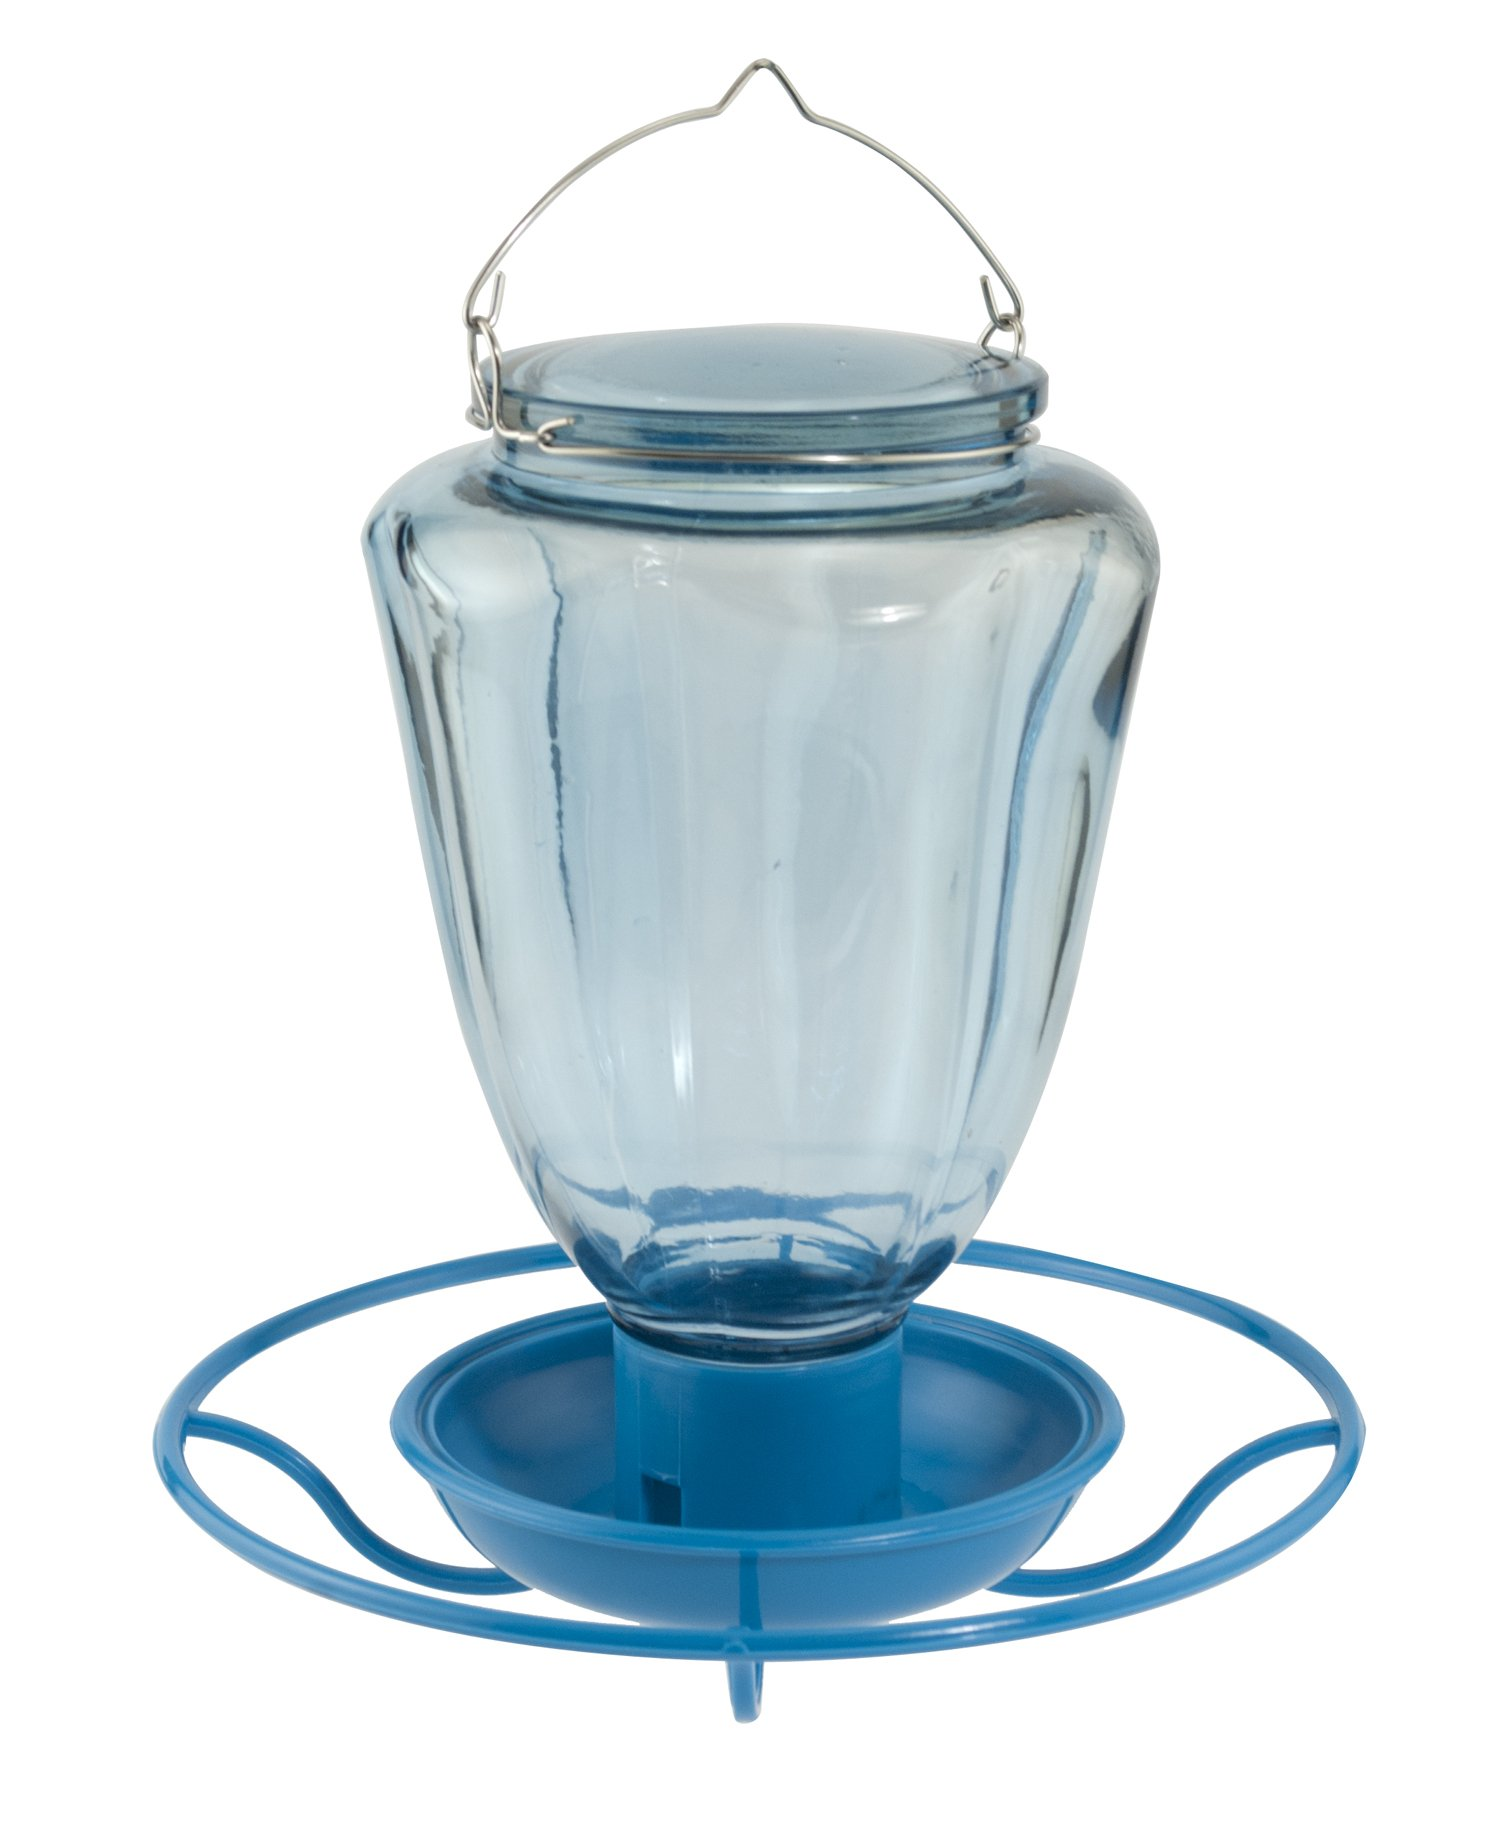 Audubon by Woodink 23890 Audubon Naw Glass Water Feeder, Large, Clear by Audubon by Woodink